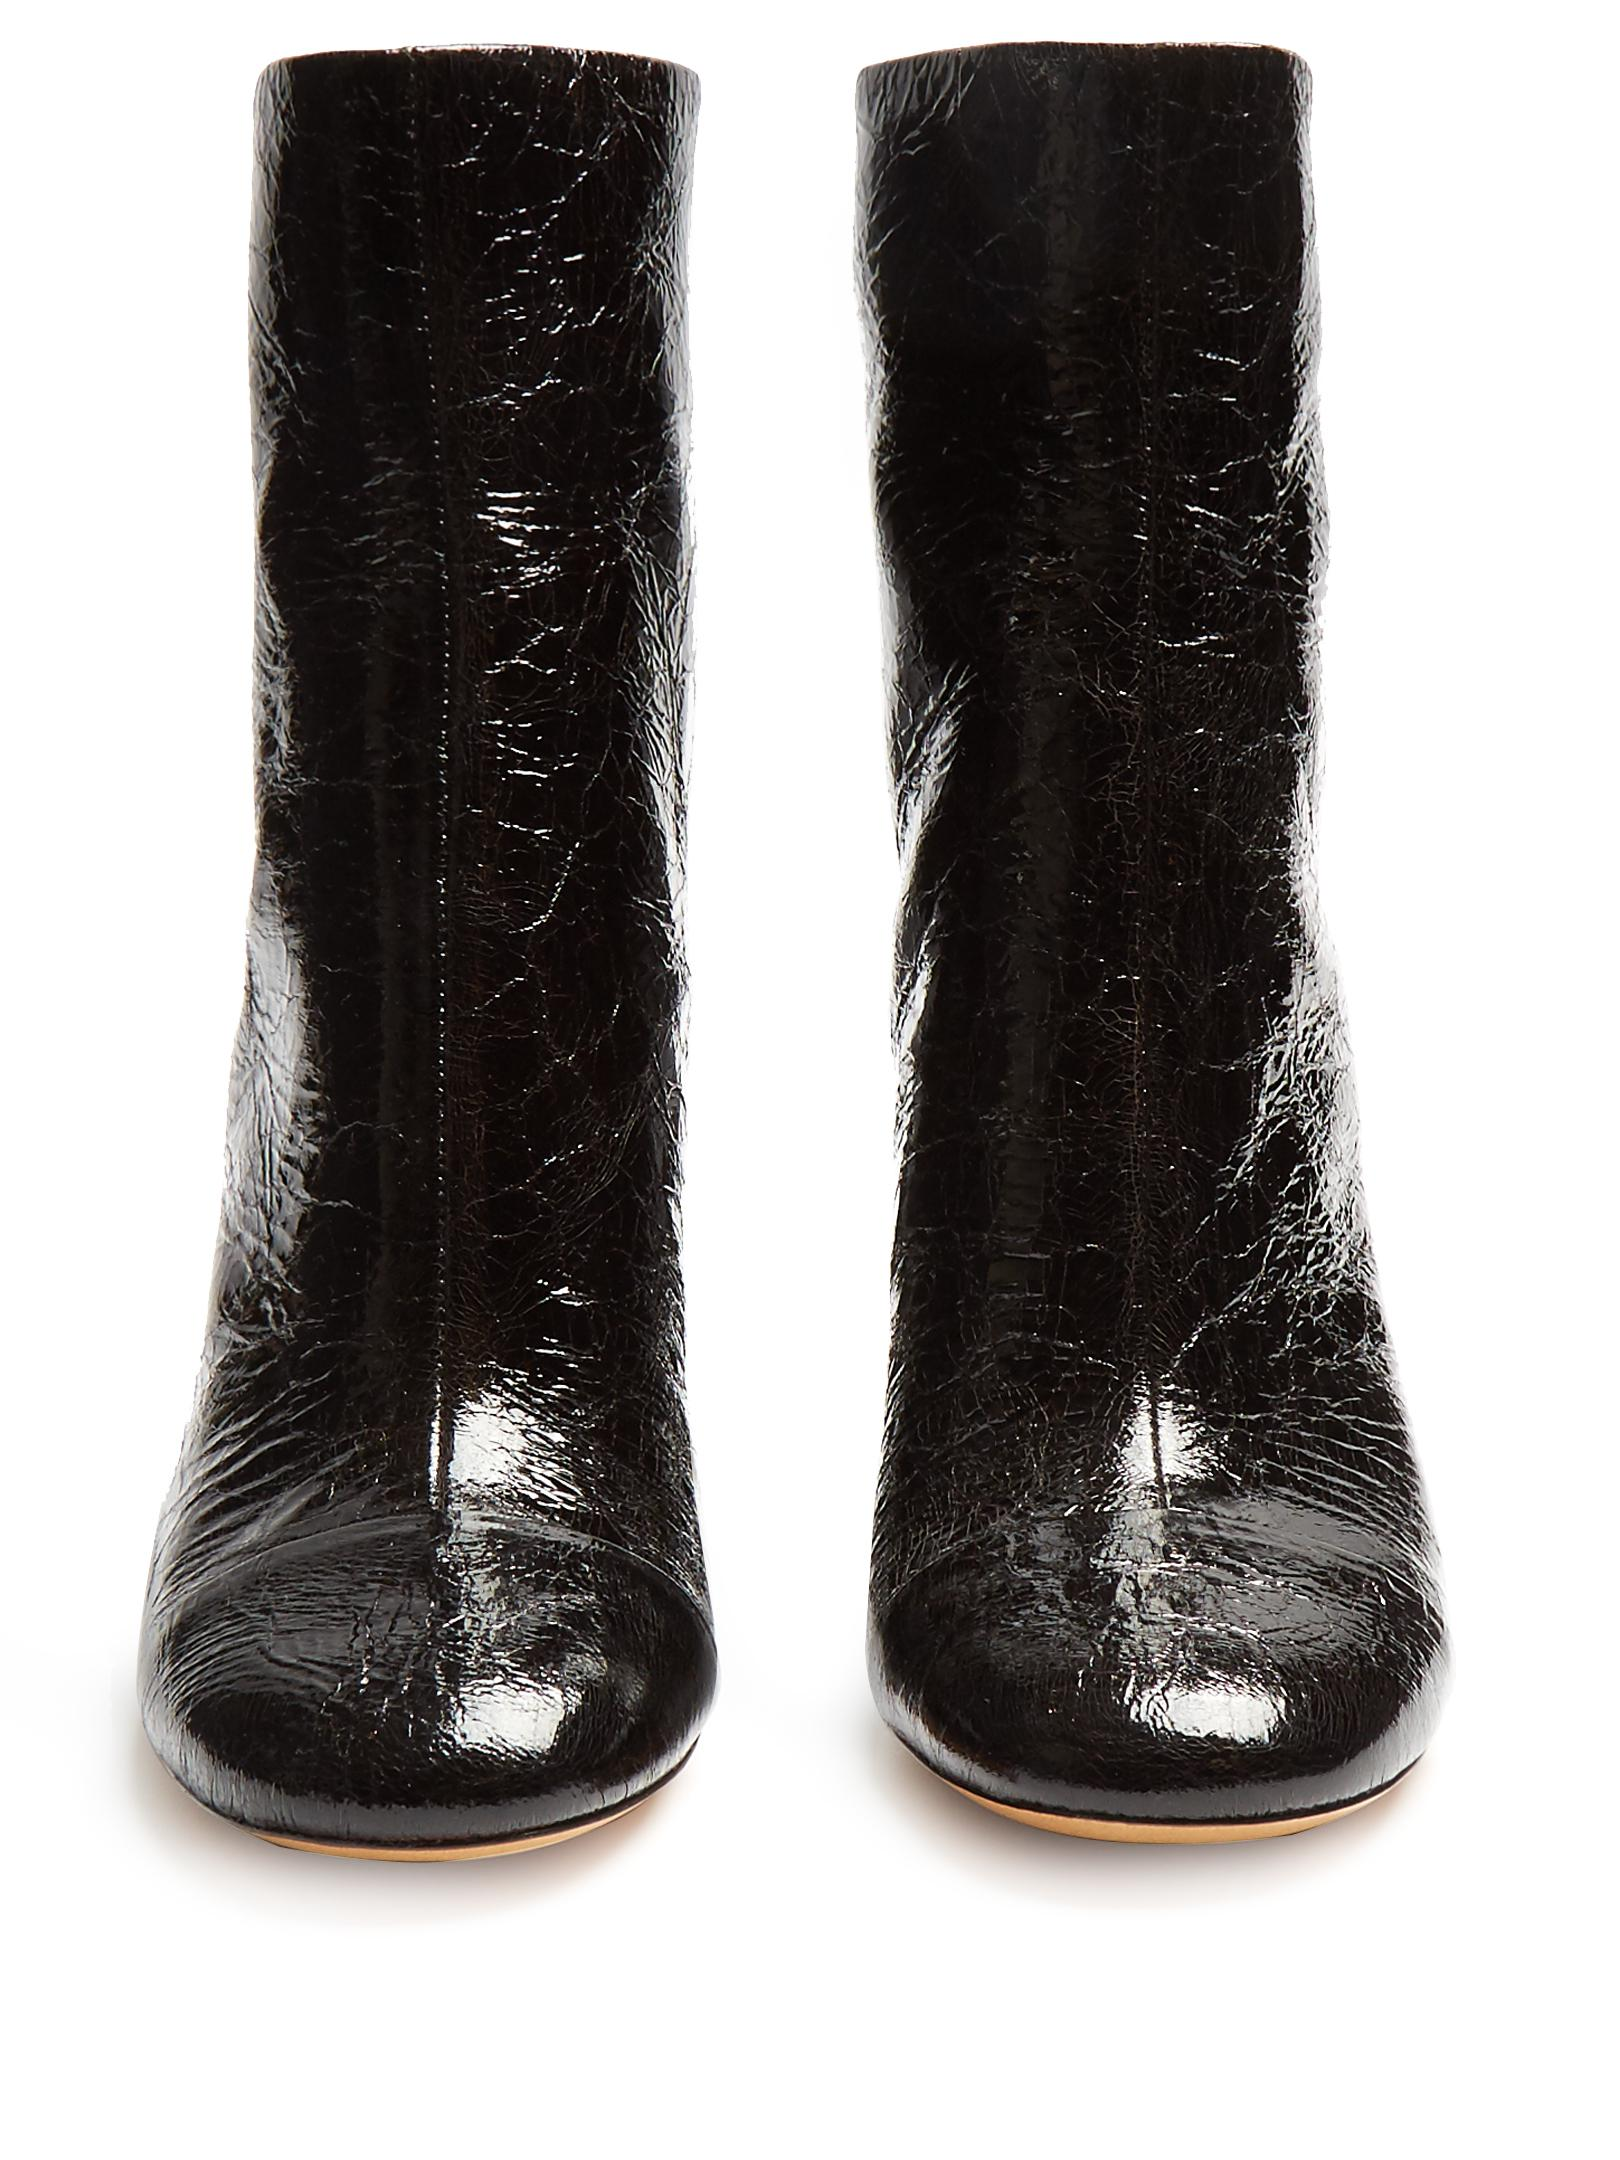 Isabel Marant Grover Crinkle Patent